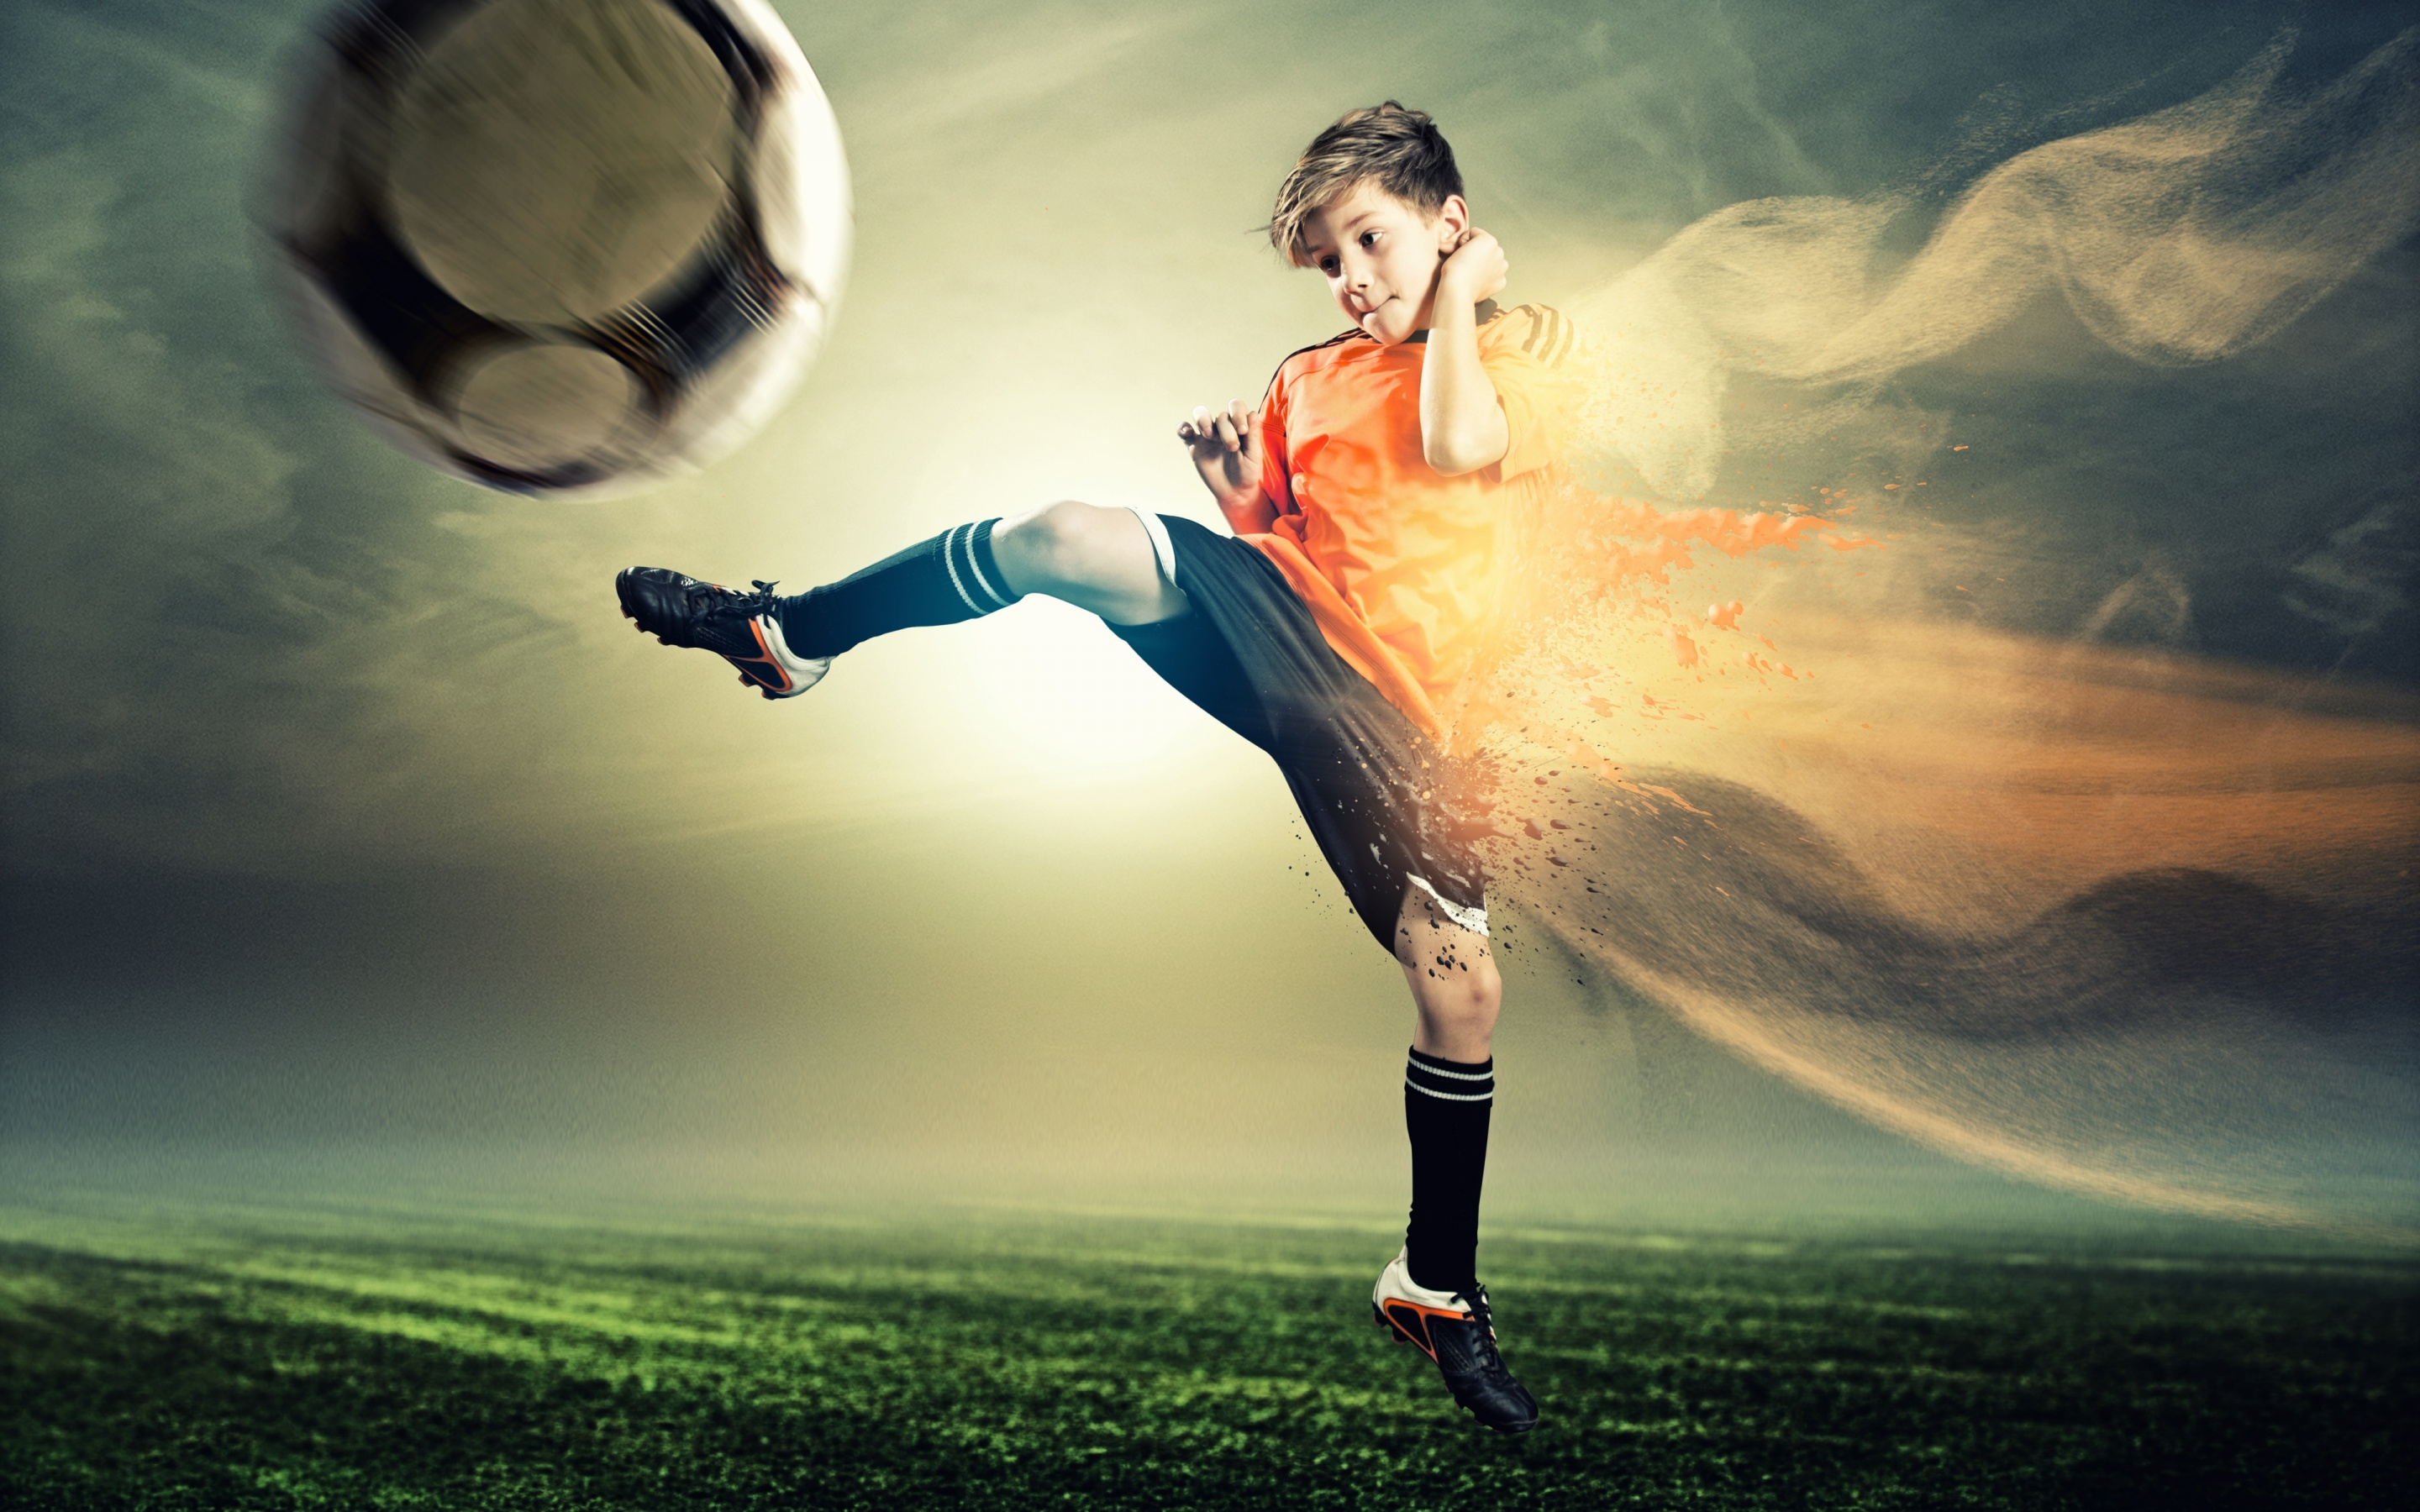 Child Games In Wonderful Soccer Dreams Wallpapers ...